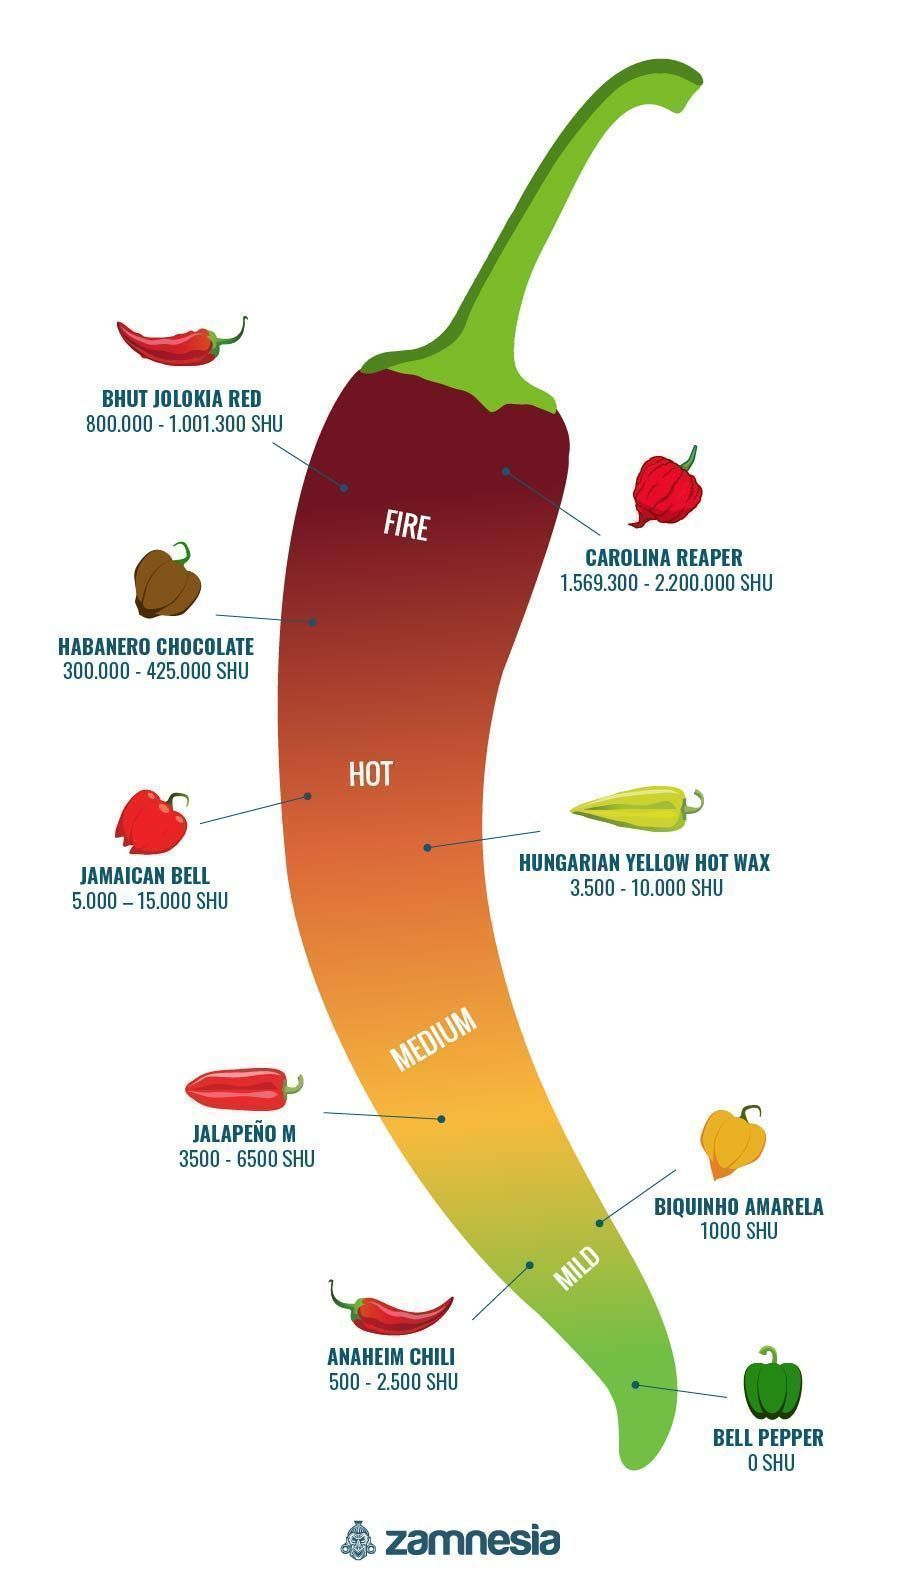 How Hot Are Ghost Peppers?